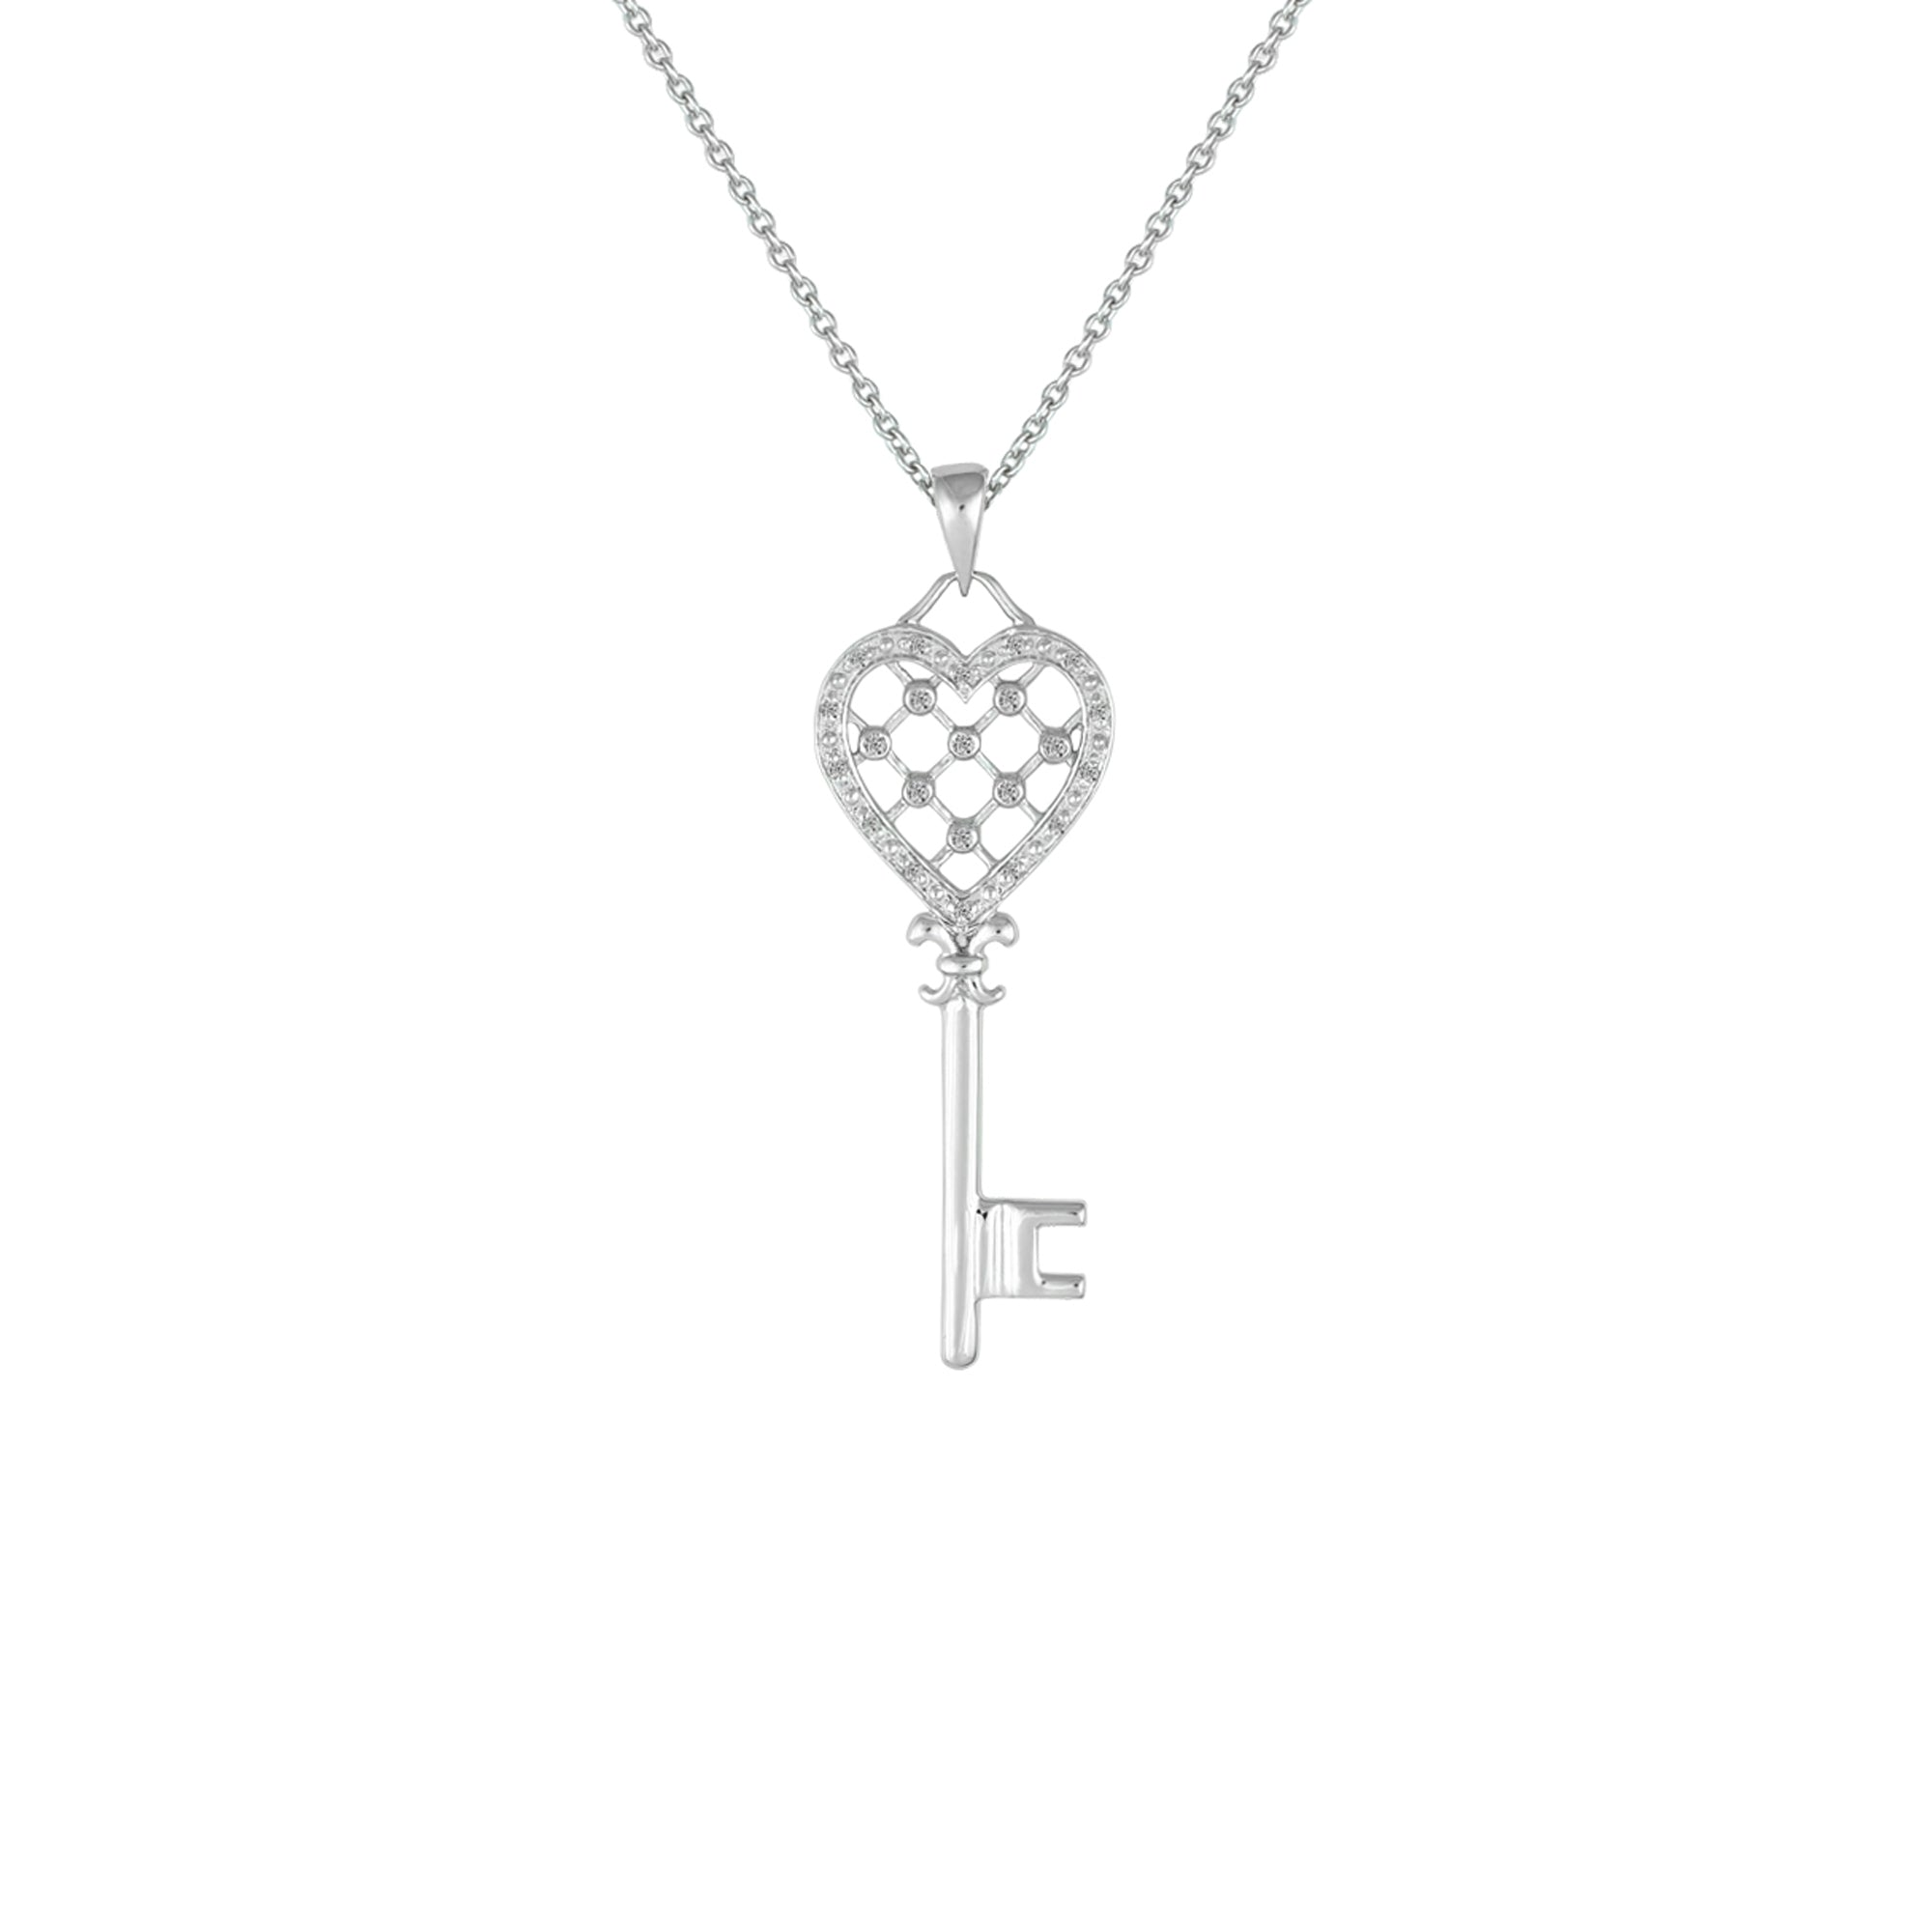 1b4a43a1d7f3a Diamond Accent Heart Key Pendant in Sterling Silver